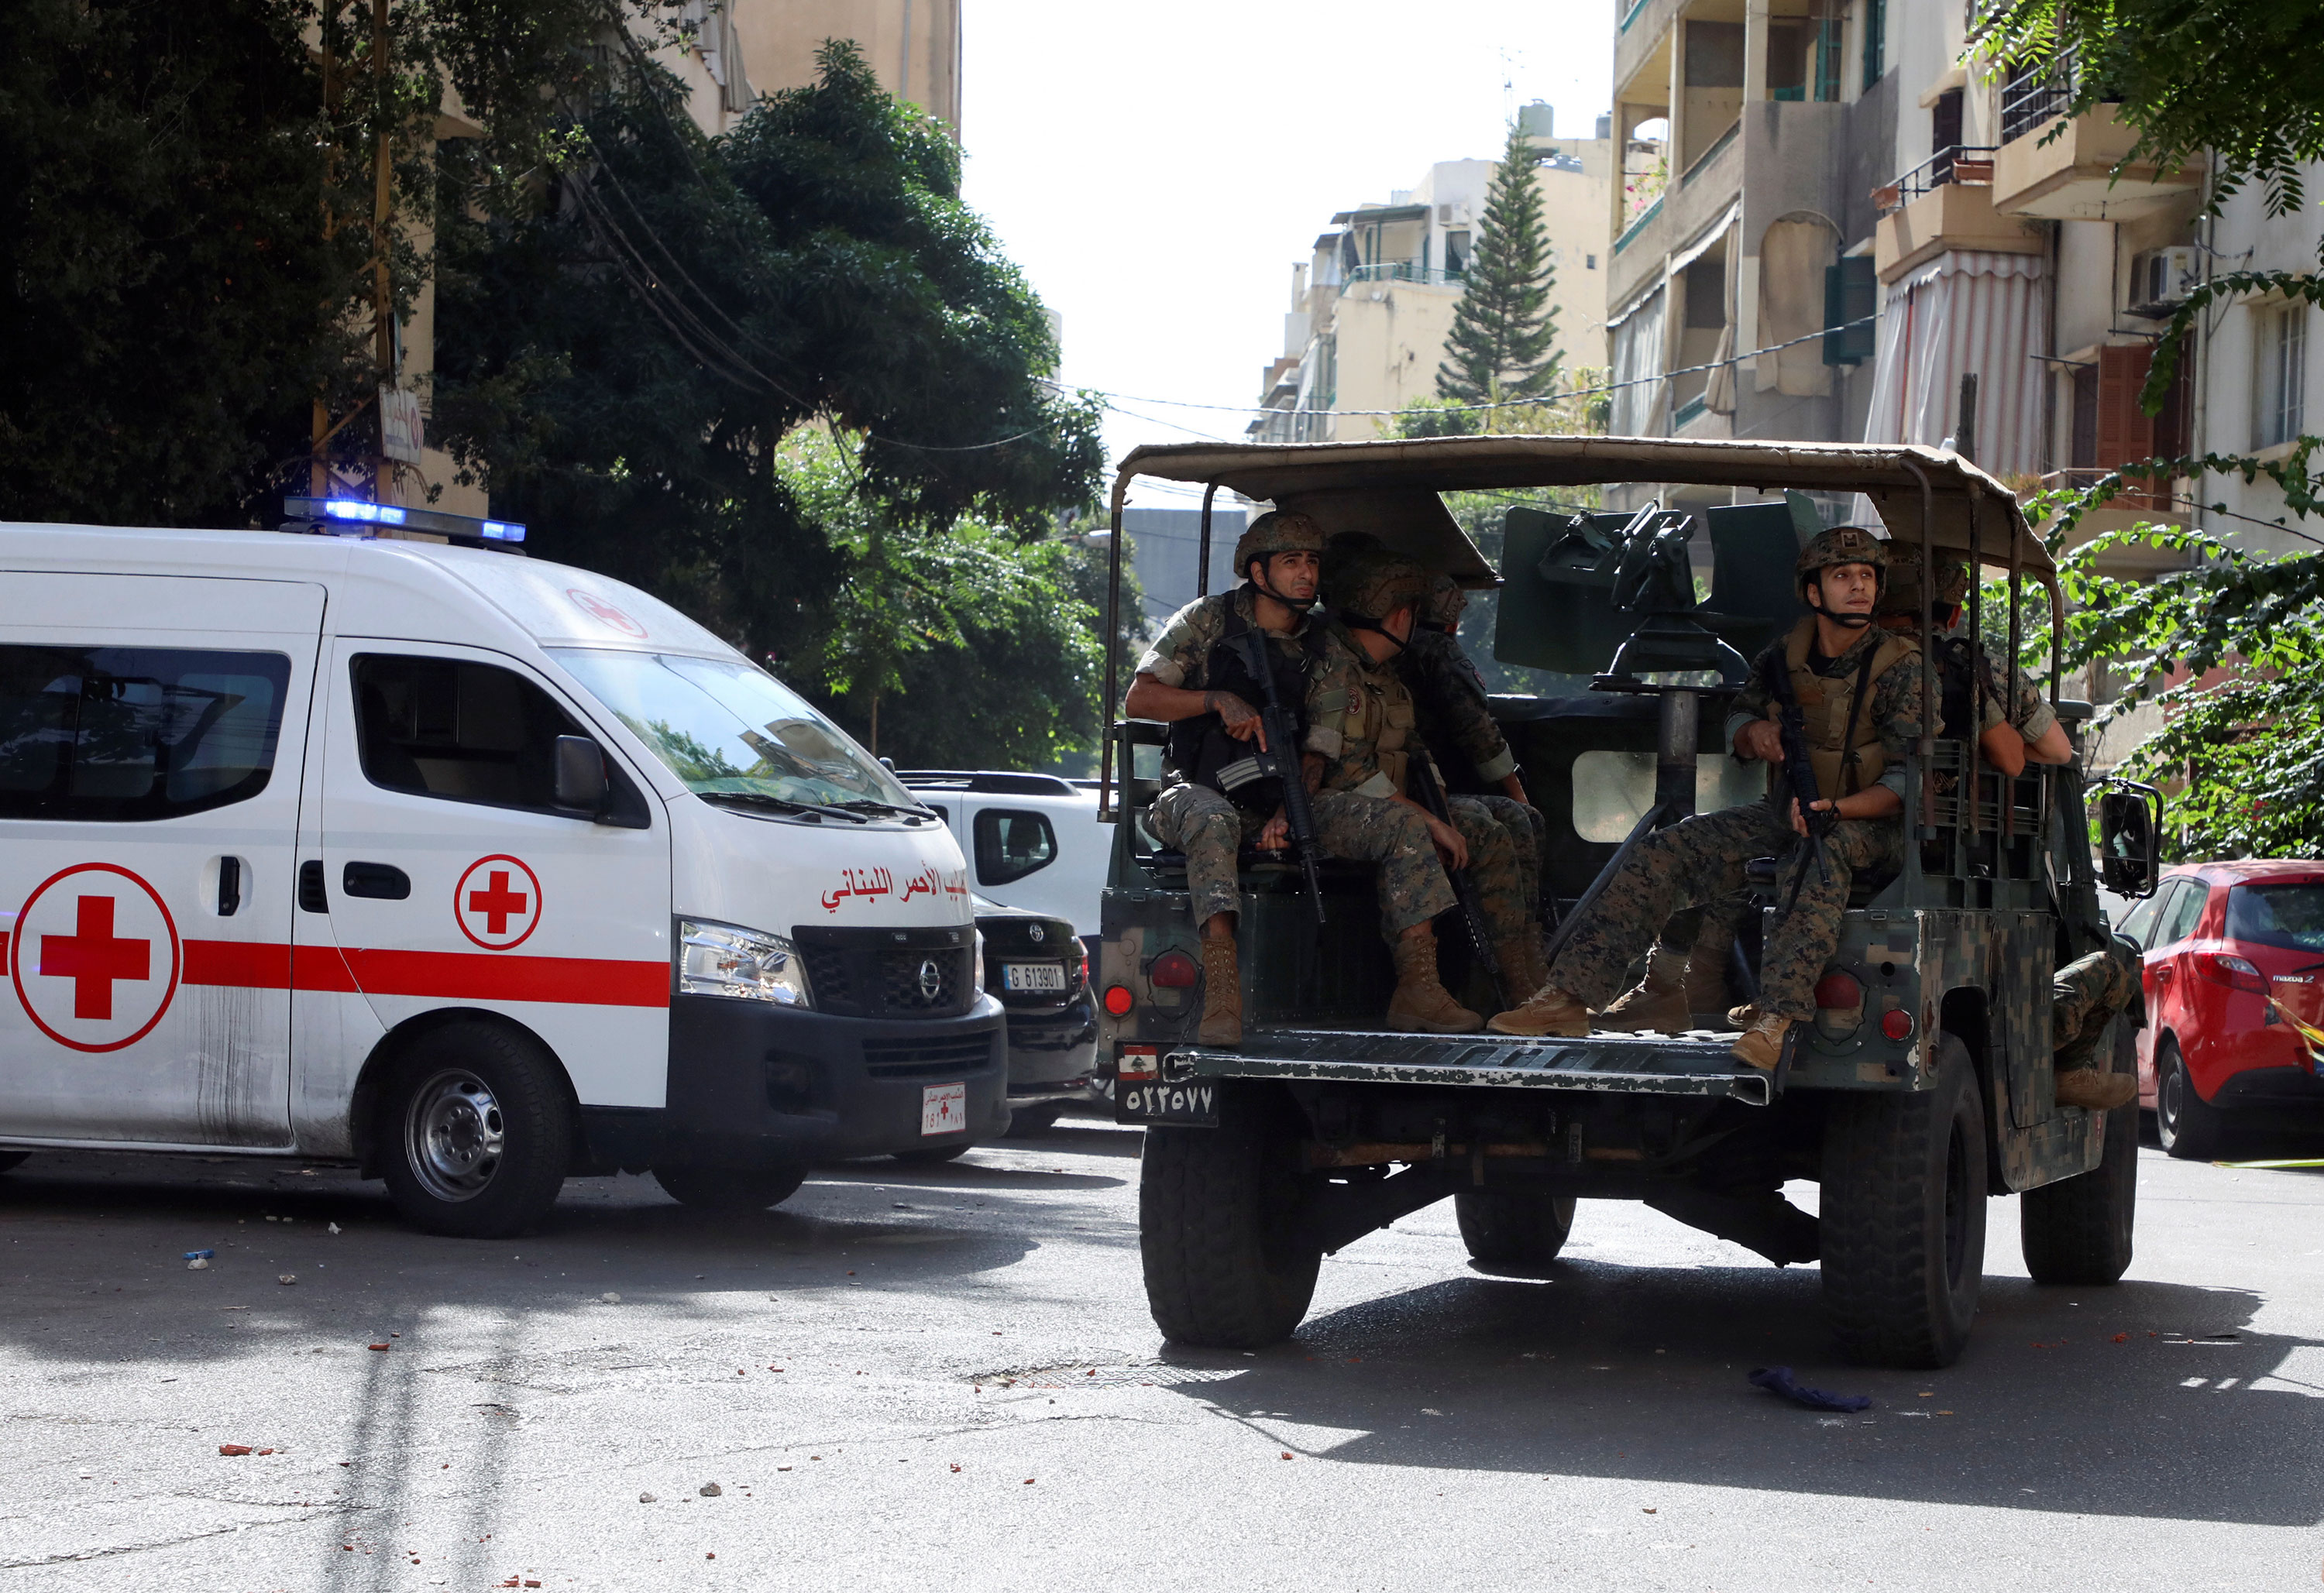 Lebanese soldiers are deployed after gunfire erupted near the site of a protest in Beirut on October 14.